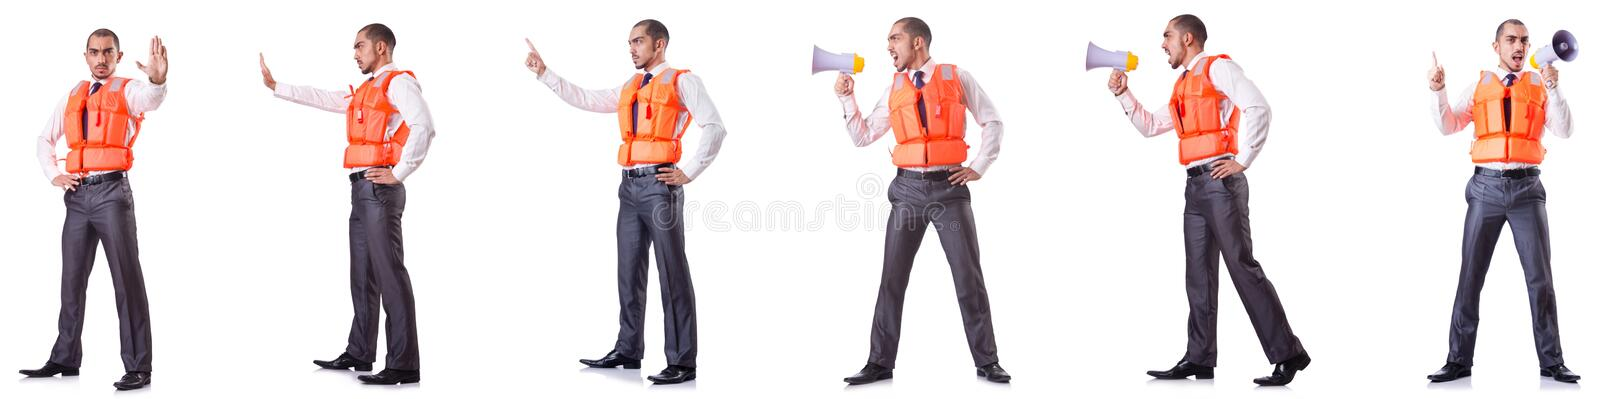 The businessman with rescue safety vest on white. Businessman with rescue safety vest on white stock image